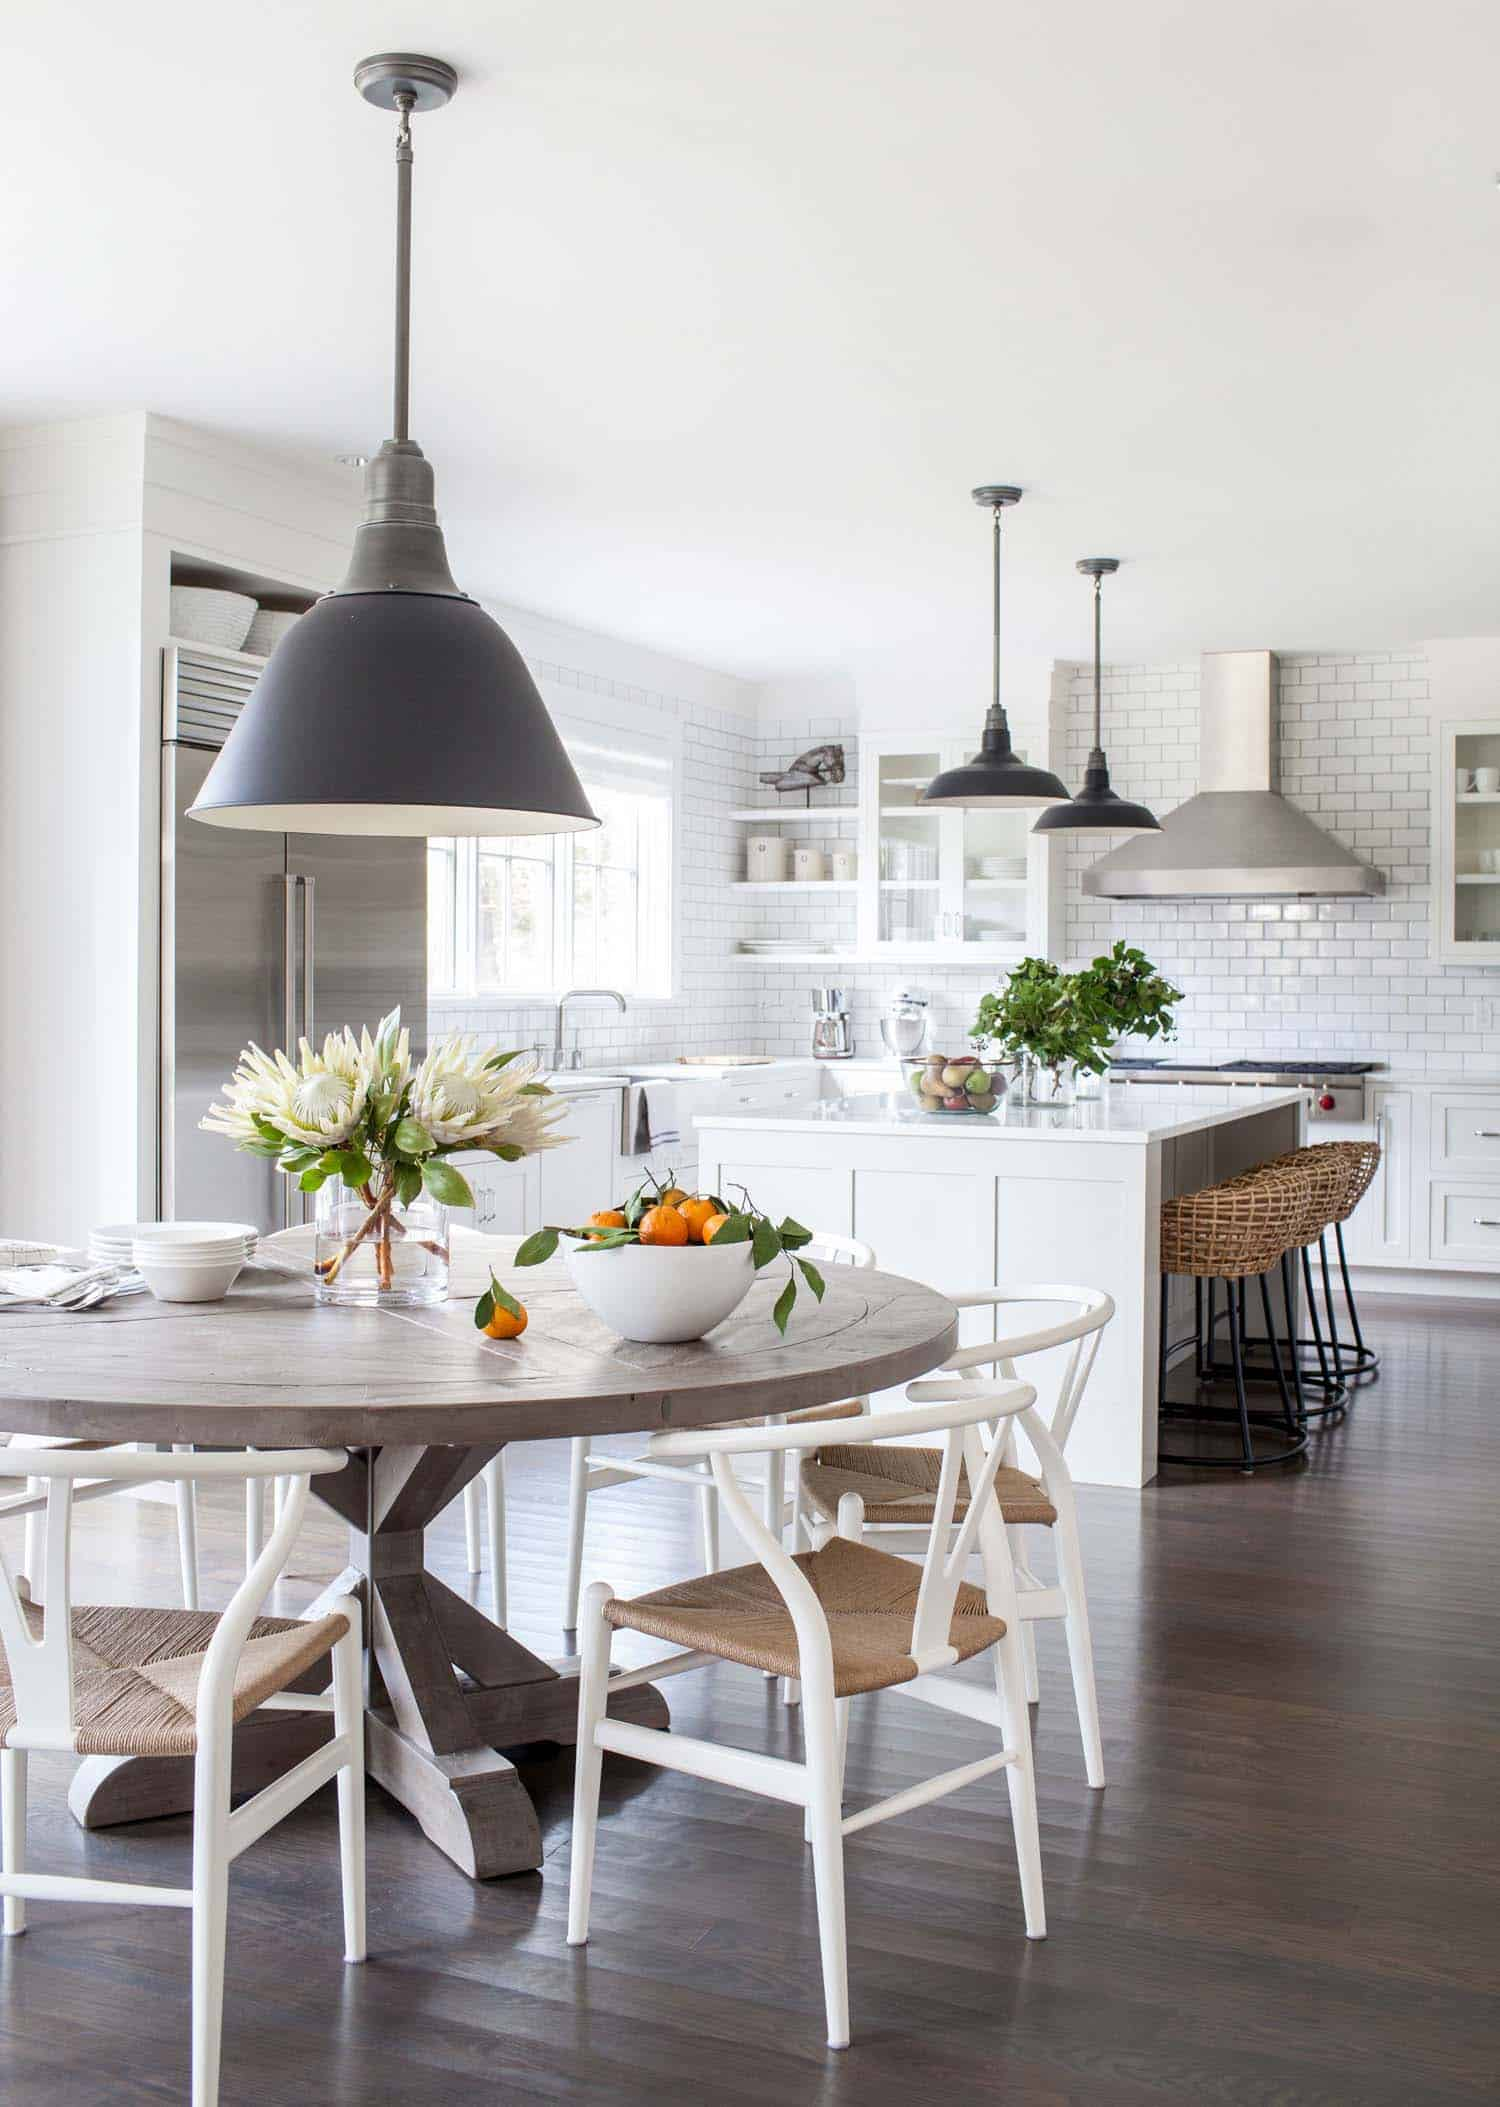 Westport Modern Farmhouse-Chango-Co-12-1-Kindesign